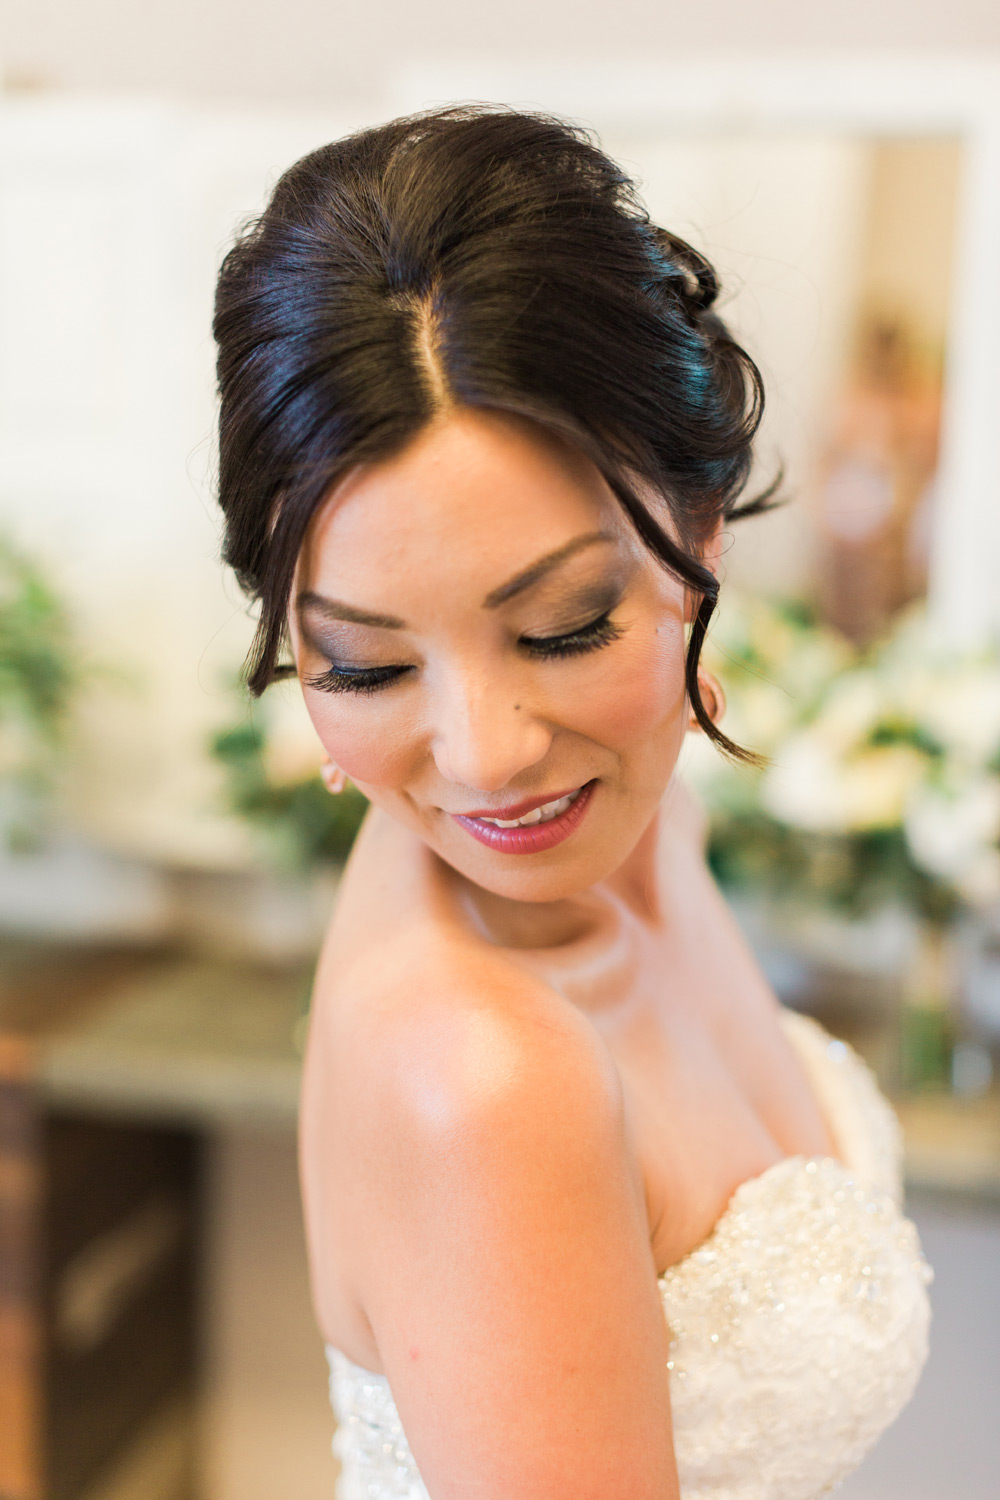 Bridal Makeup Artist For Amber Lees Wedding At Tooth